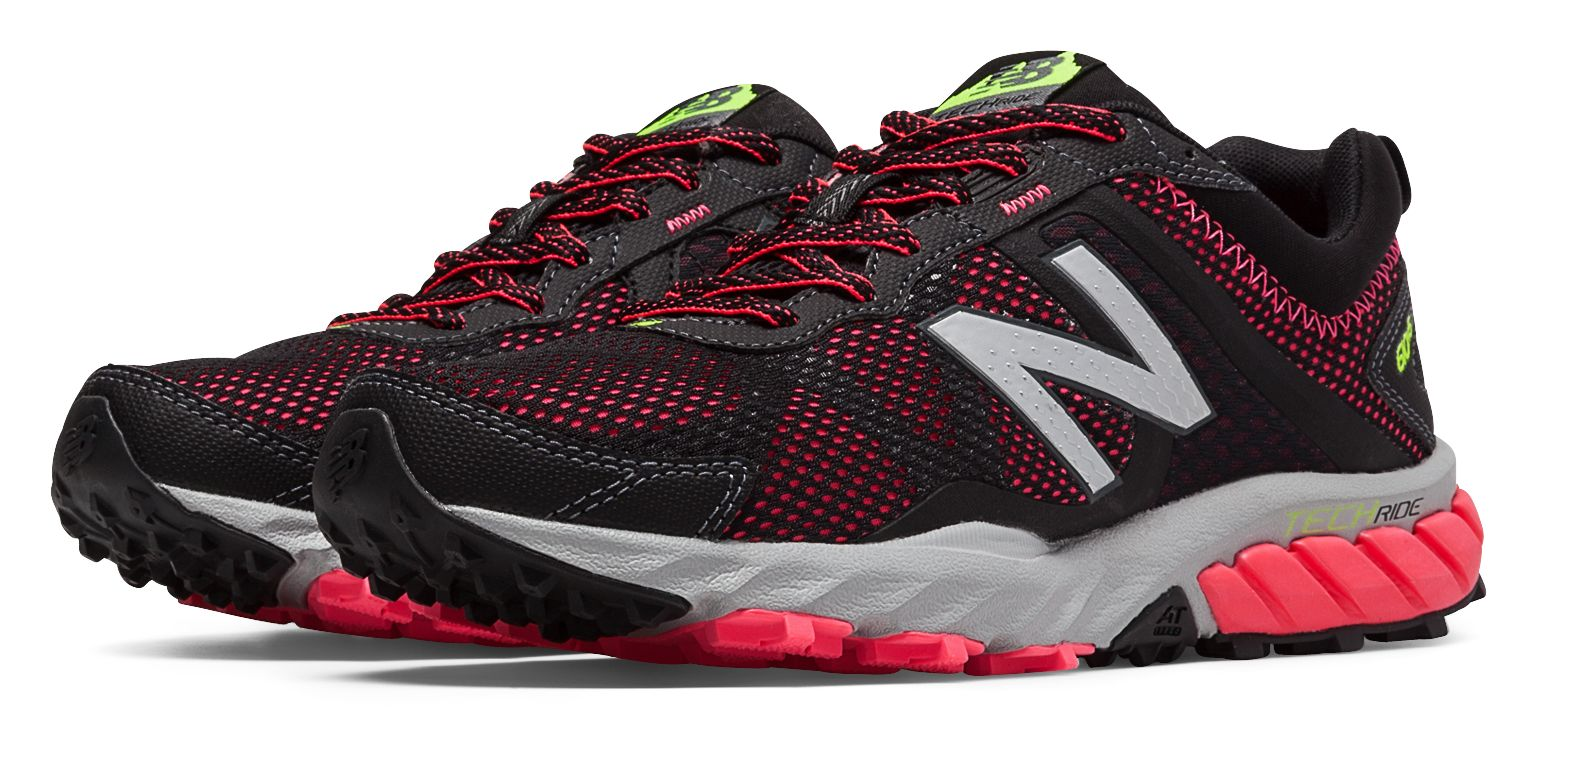 New Balance WT610-V5 on Sale - Discounts Up to 30% Off on WT610LB5. Joe\u0027s  New Balance Outlet featuring discount shoes ...